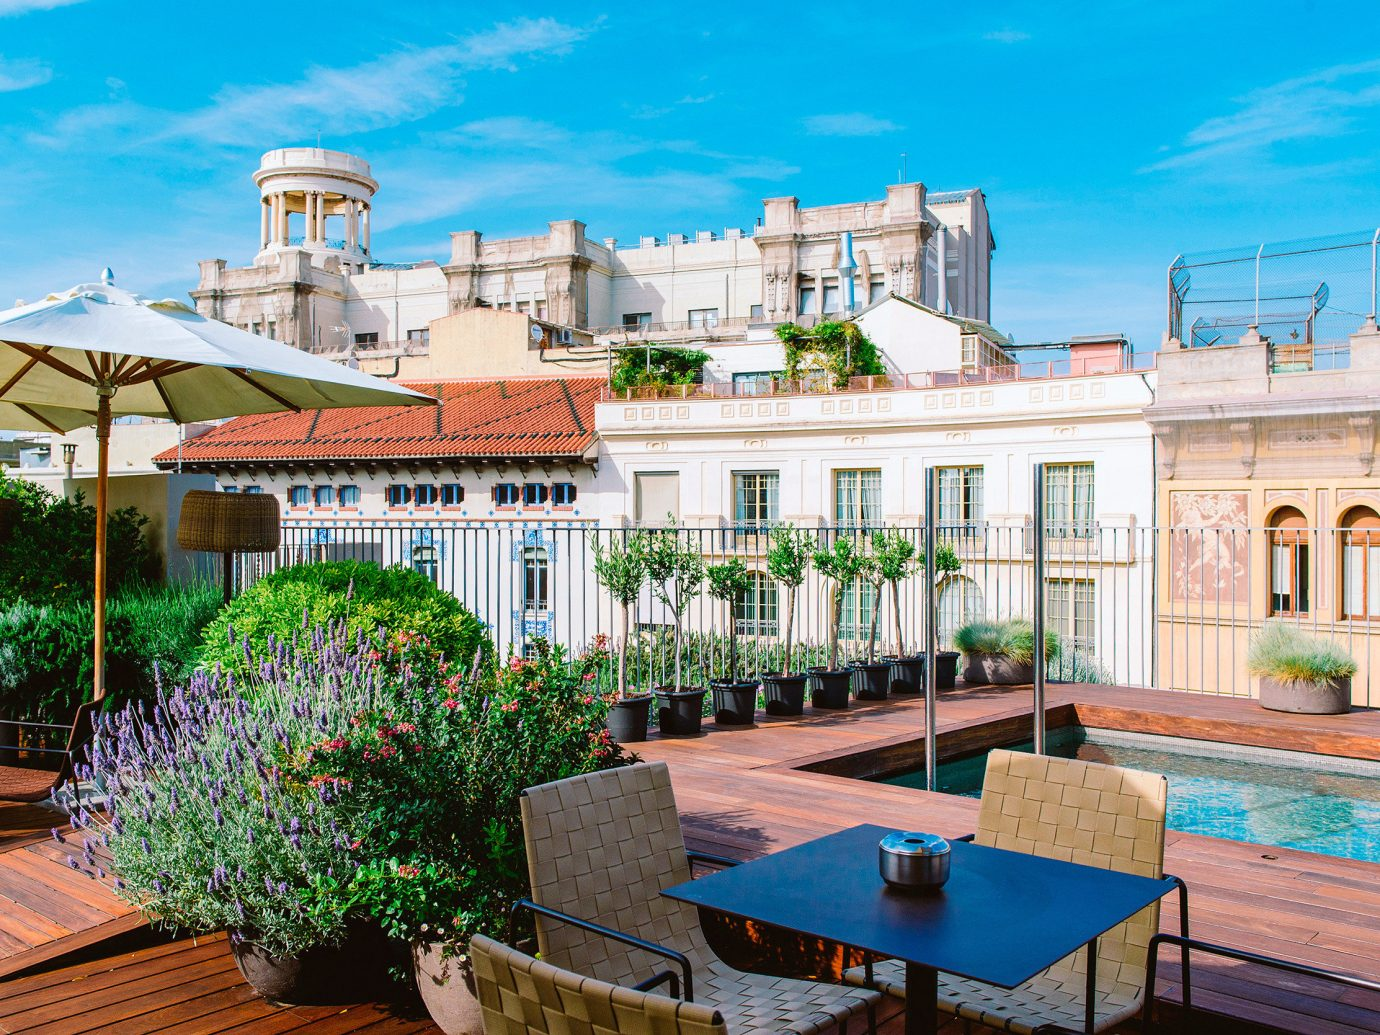 Barcelona Boutique Boutique Hotels City Deck Hip Hotels Luxury Modern Pool Rooftop Spain outdoor sky property estate Resort building vacation home swimming pool palace Villa mansion real estate condominium walkway hacienda plaza outdoor structure Garden furniture stone